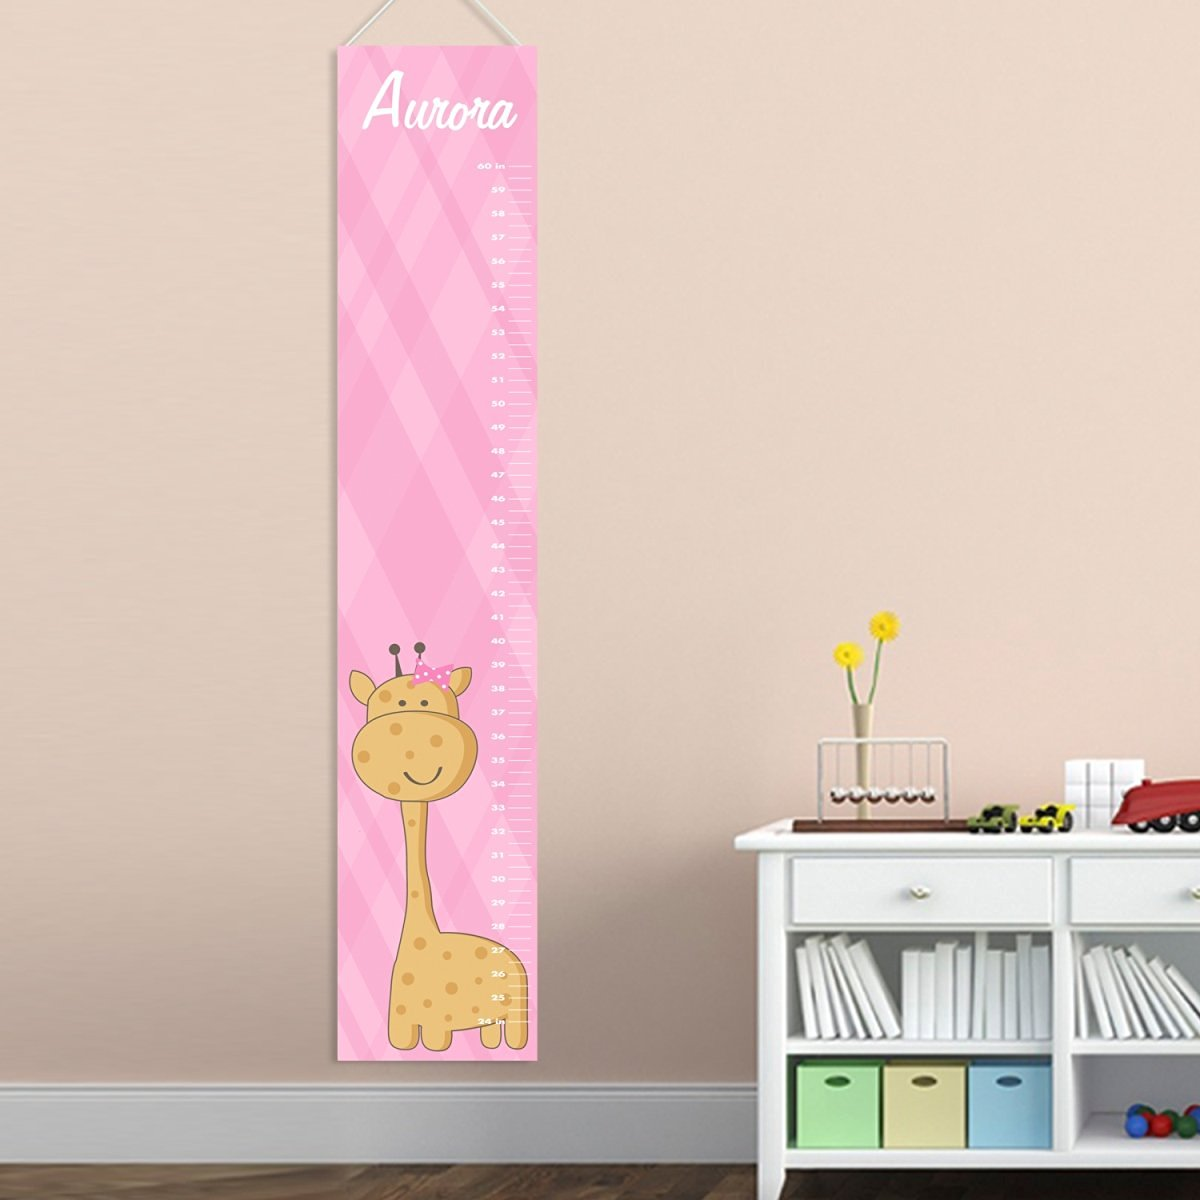 Cheap baby height growth find baby height growth deals on line at get quotations personalized baby girl giraffe growth chart personalized height charts for girls nvjuhfo Images